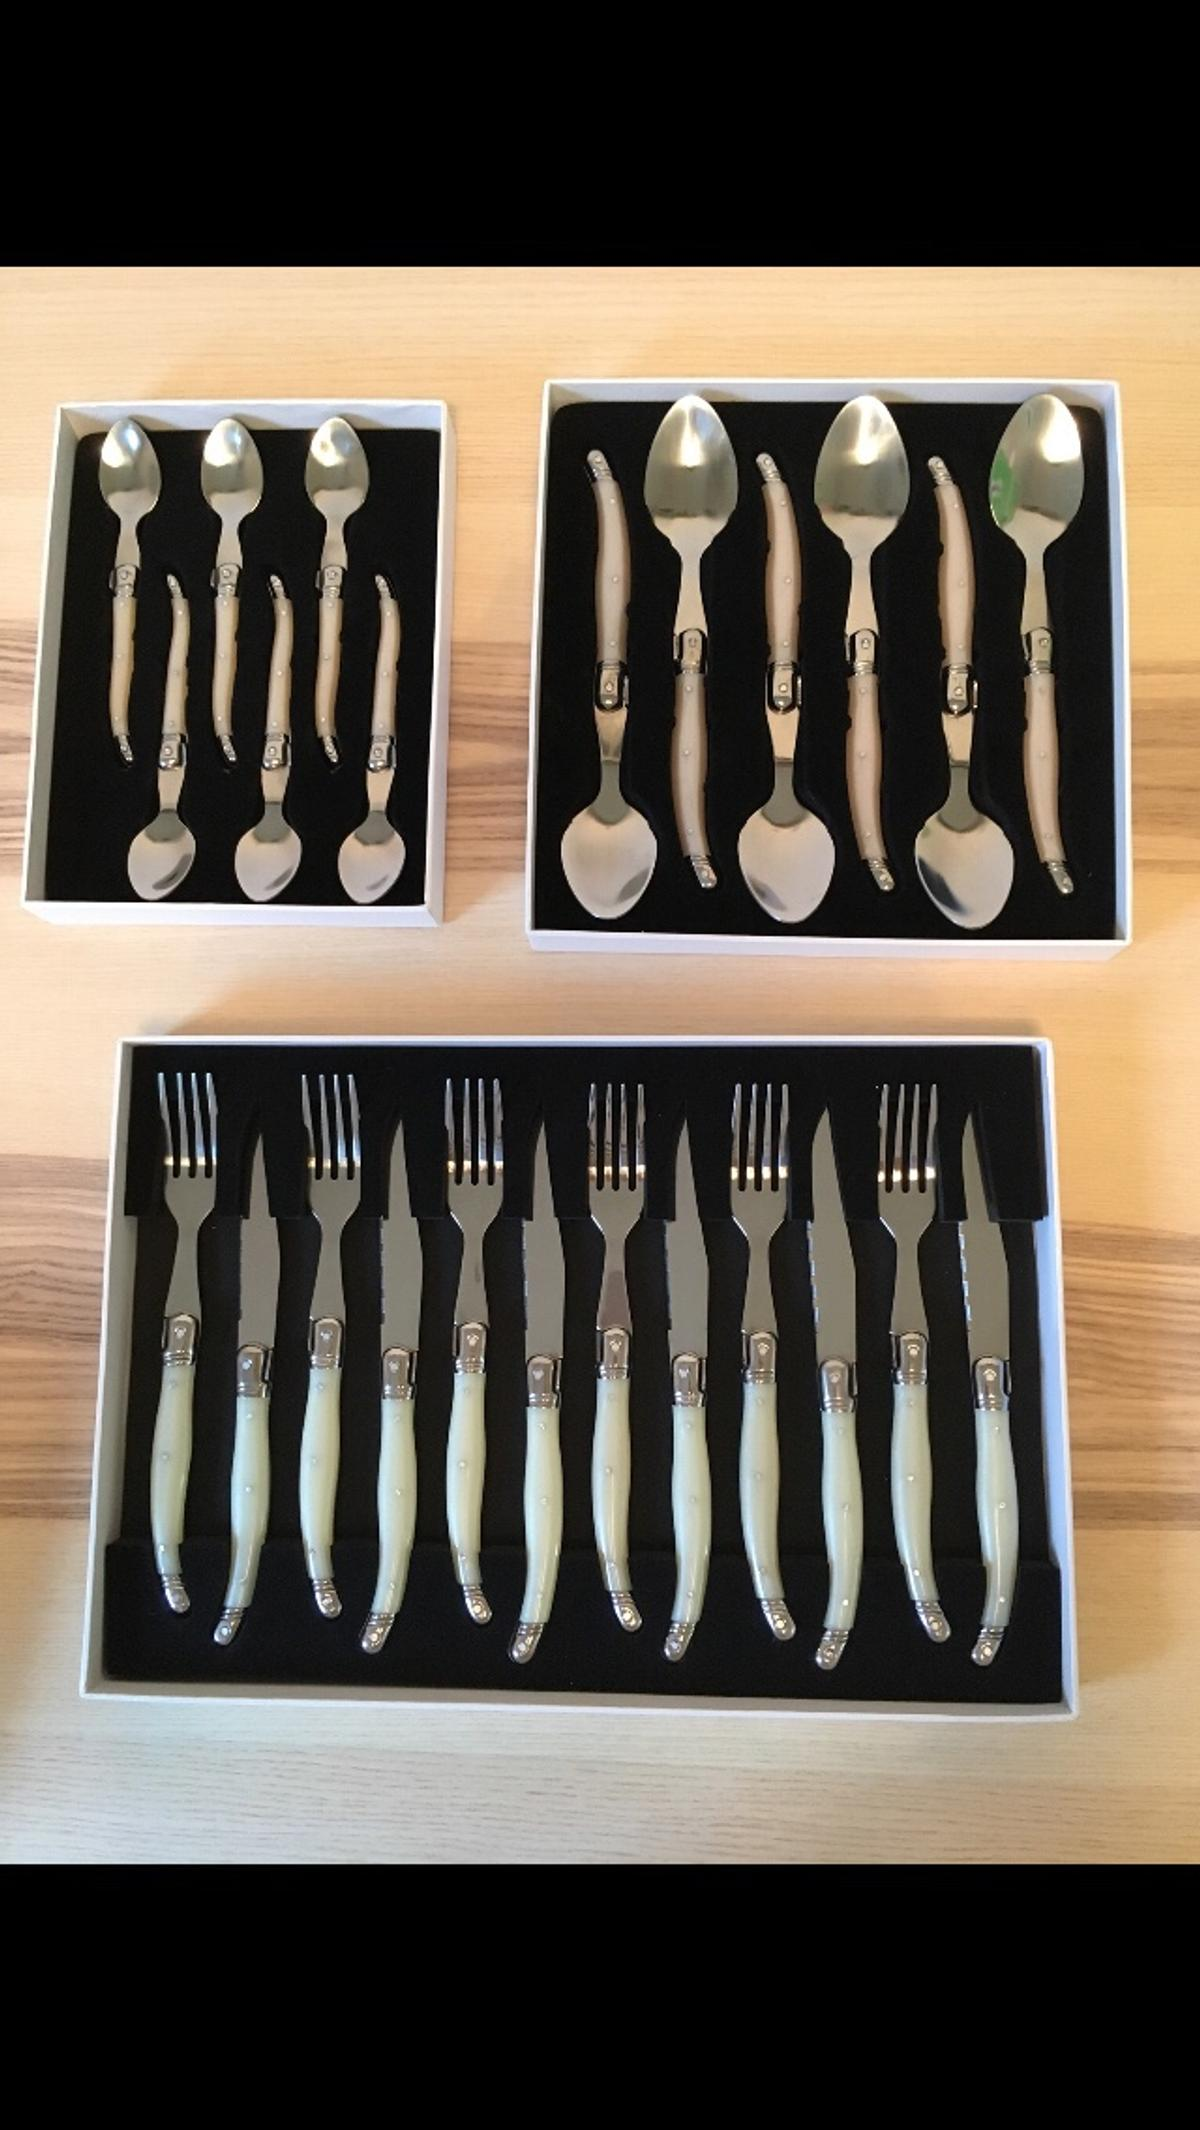 Laguiole by Scotts of Stow cutlery sets in KT17 Epsom and